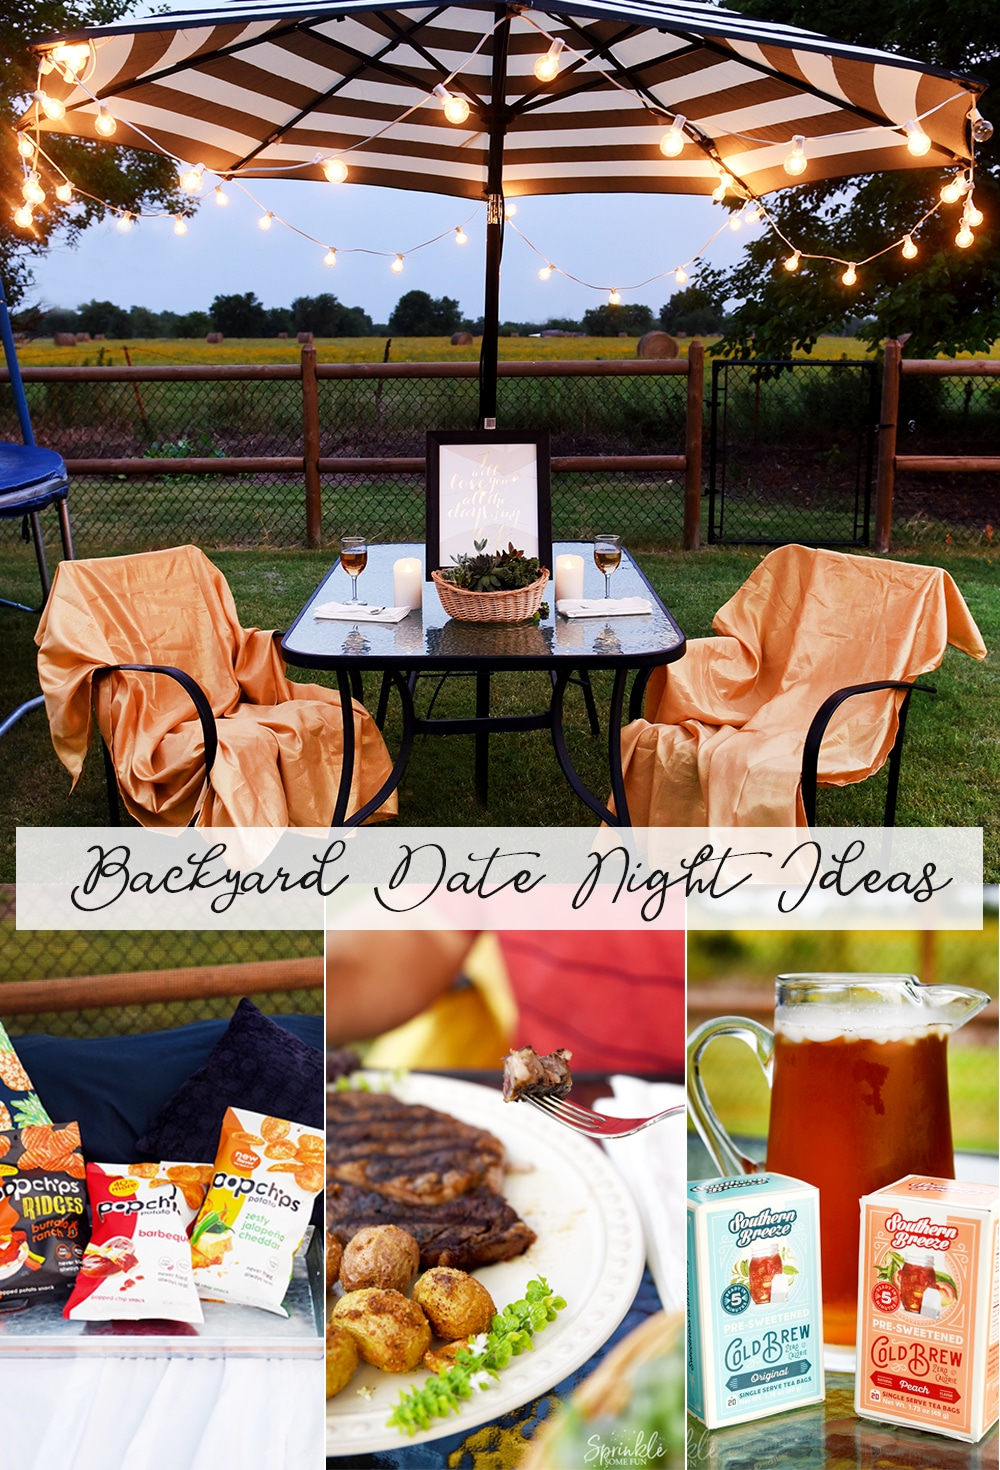 Backyard Date Night Ideas